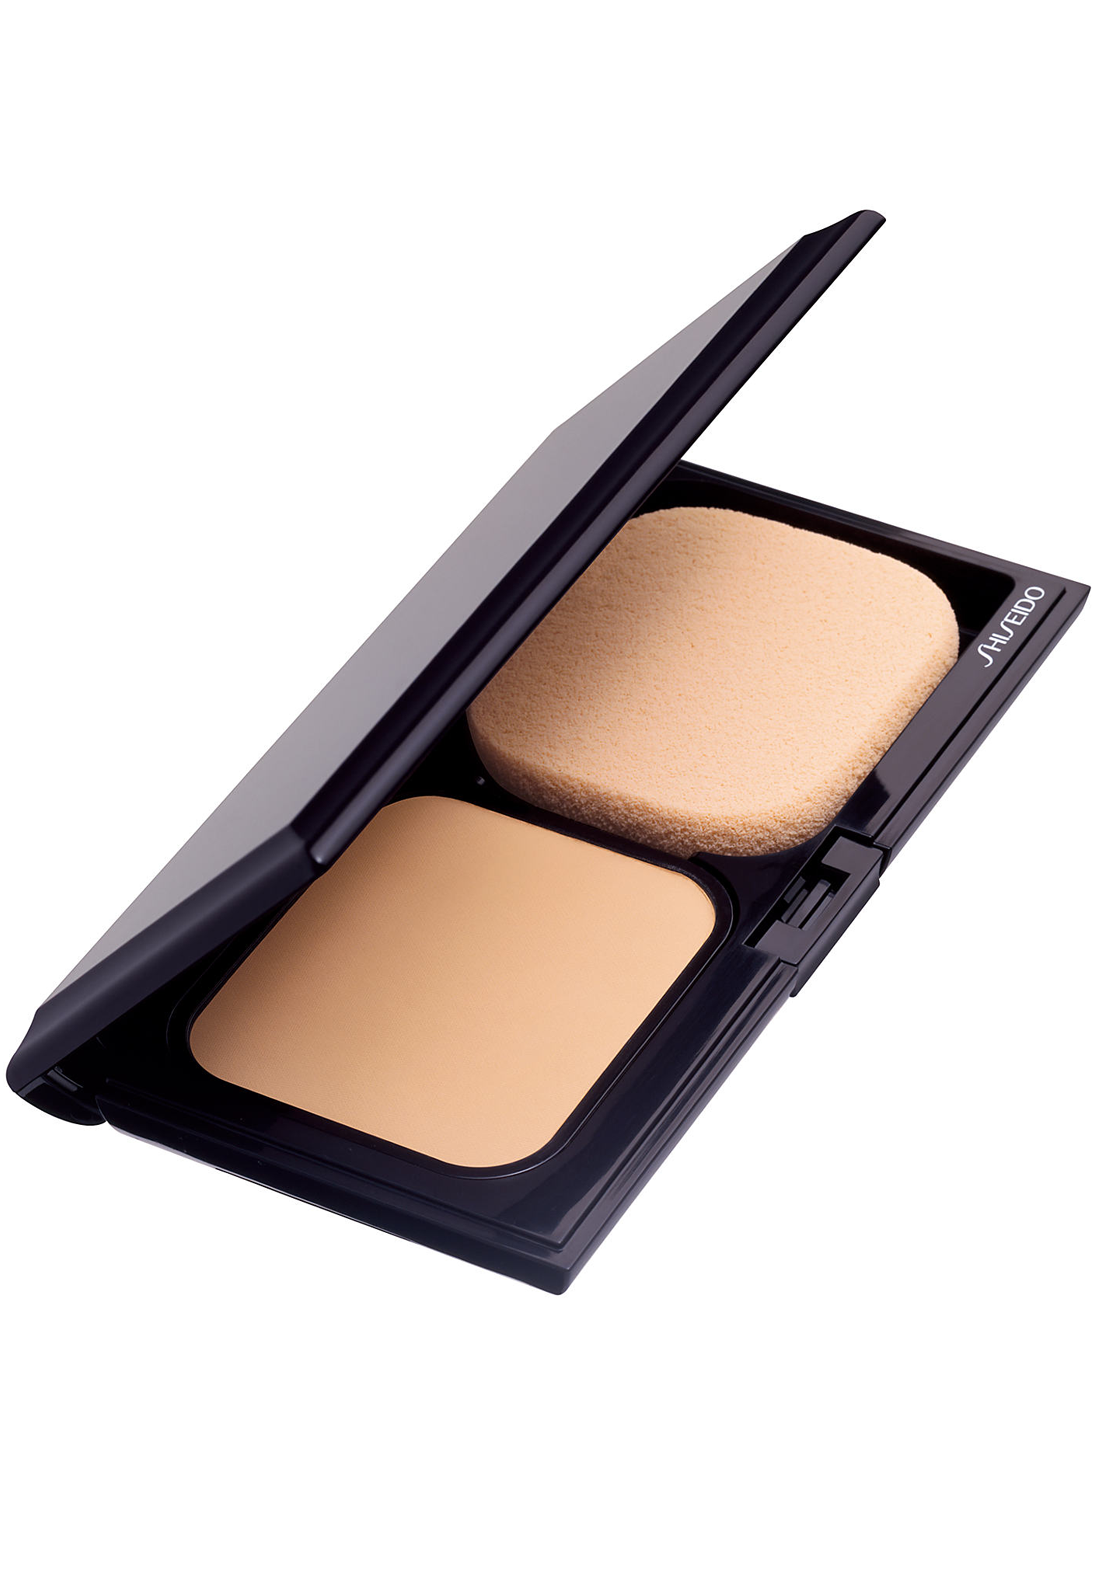 Shiseido Sheer and Perfect Compact, Natural Fair Ochre O40